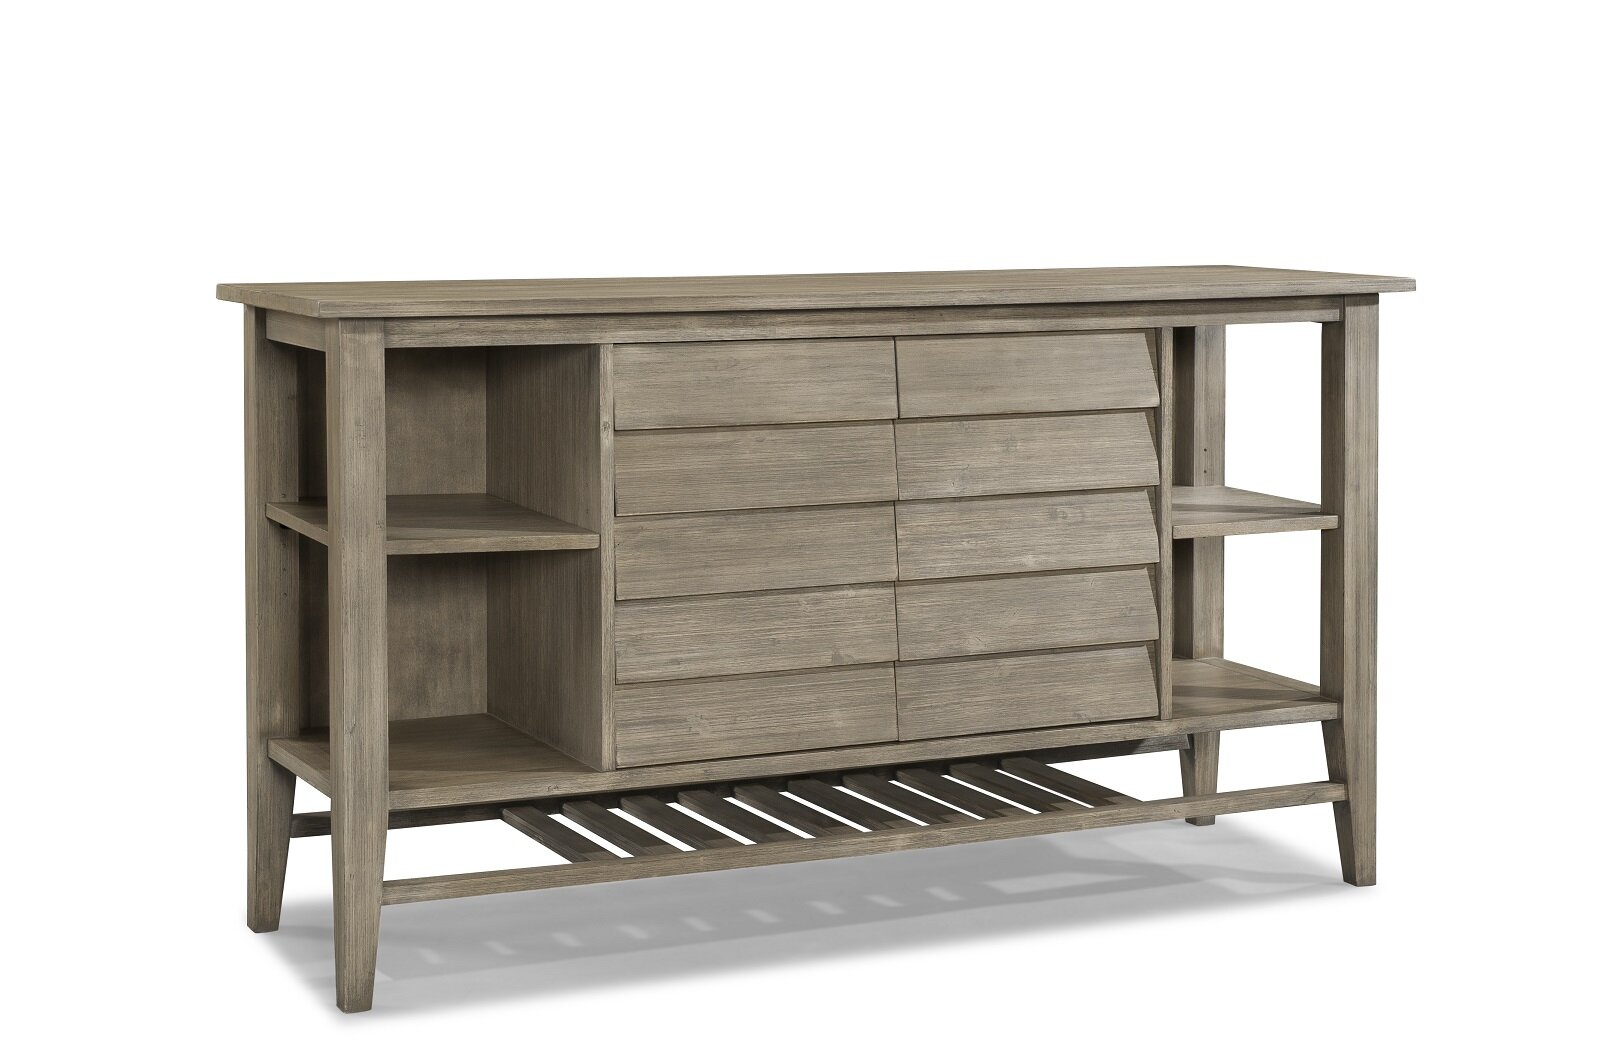 Upton Sideboard With Regard To Most Up To Date Casolino Sideboards (#20 of 20)